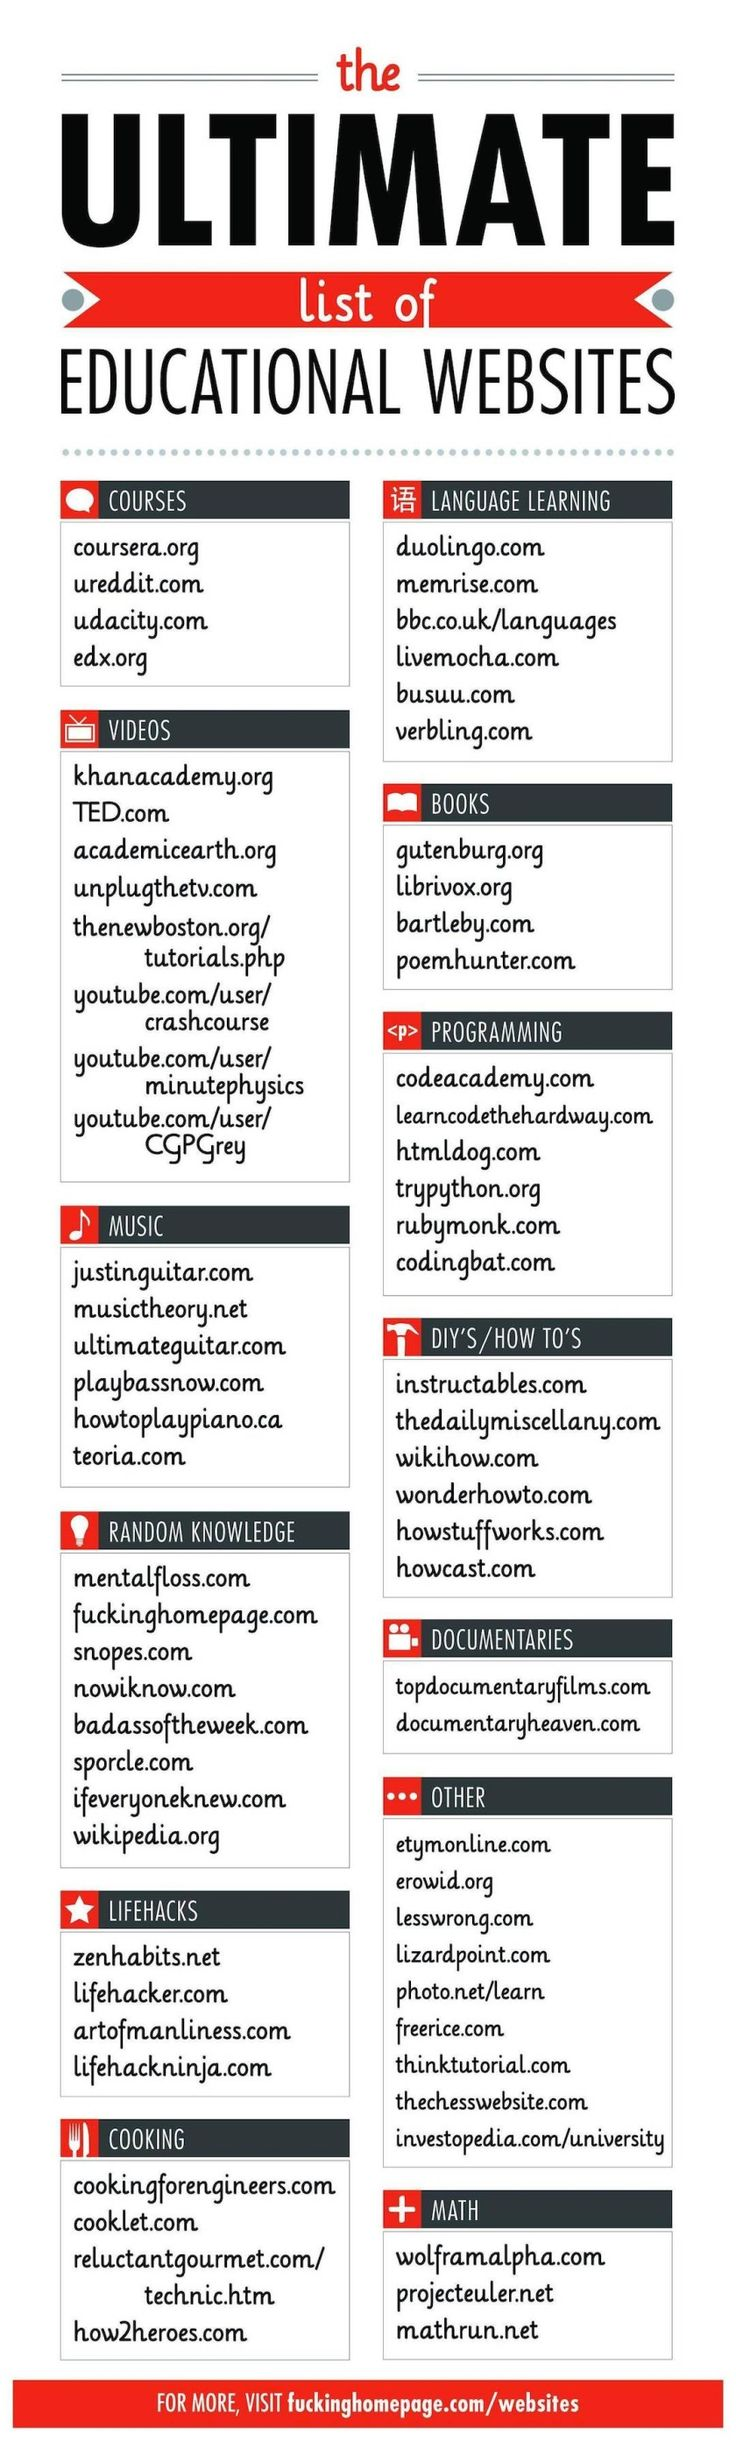 The ultimate list of eductional websites